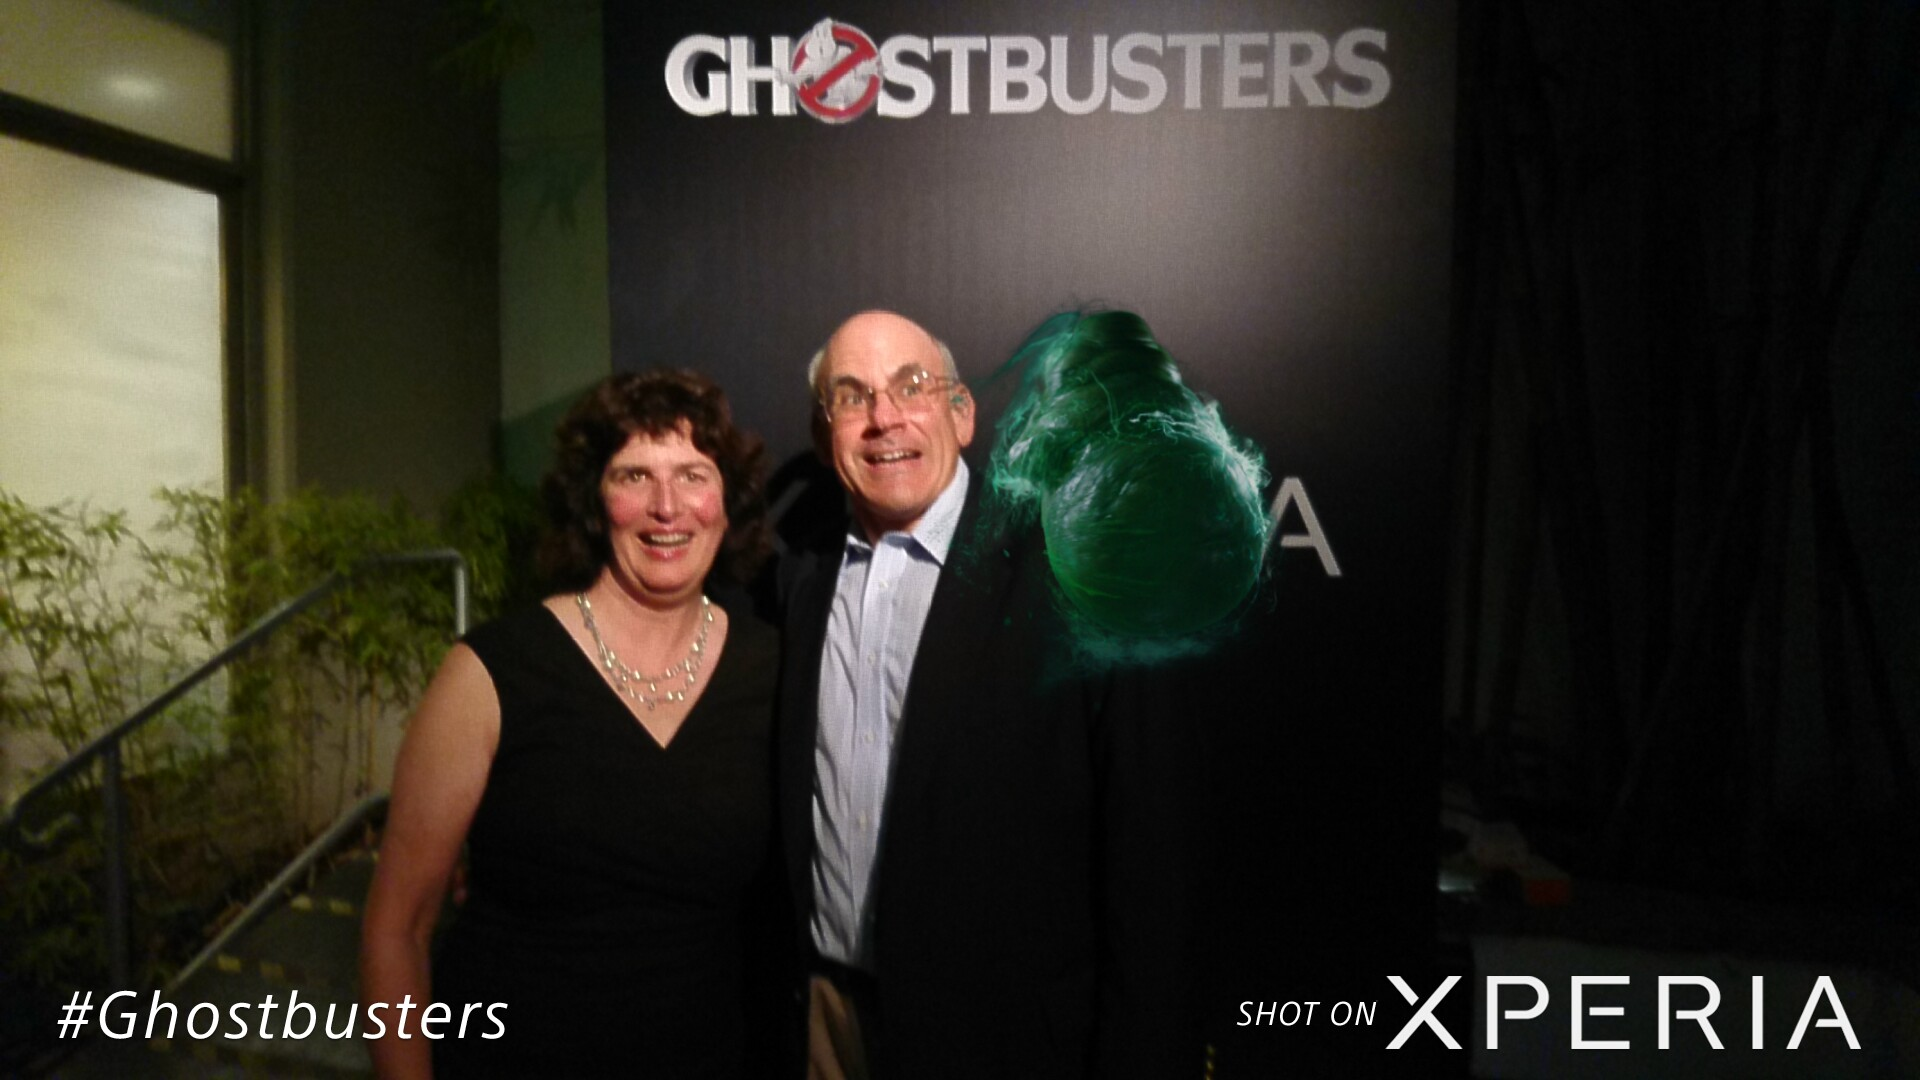 Ghostbusters_Red_Carpet_2016_07_09_22_27_53.861.jpg